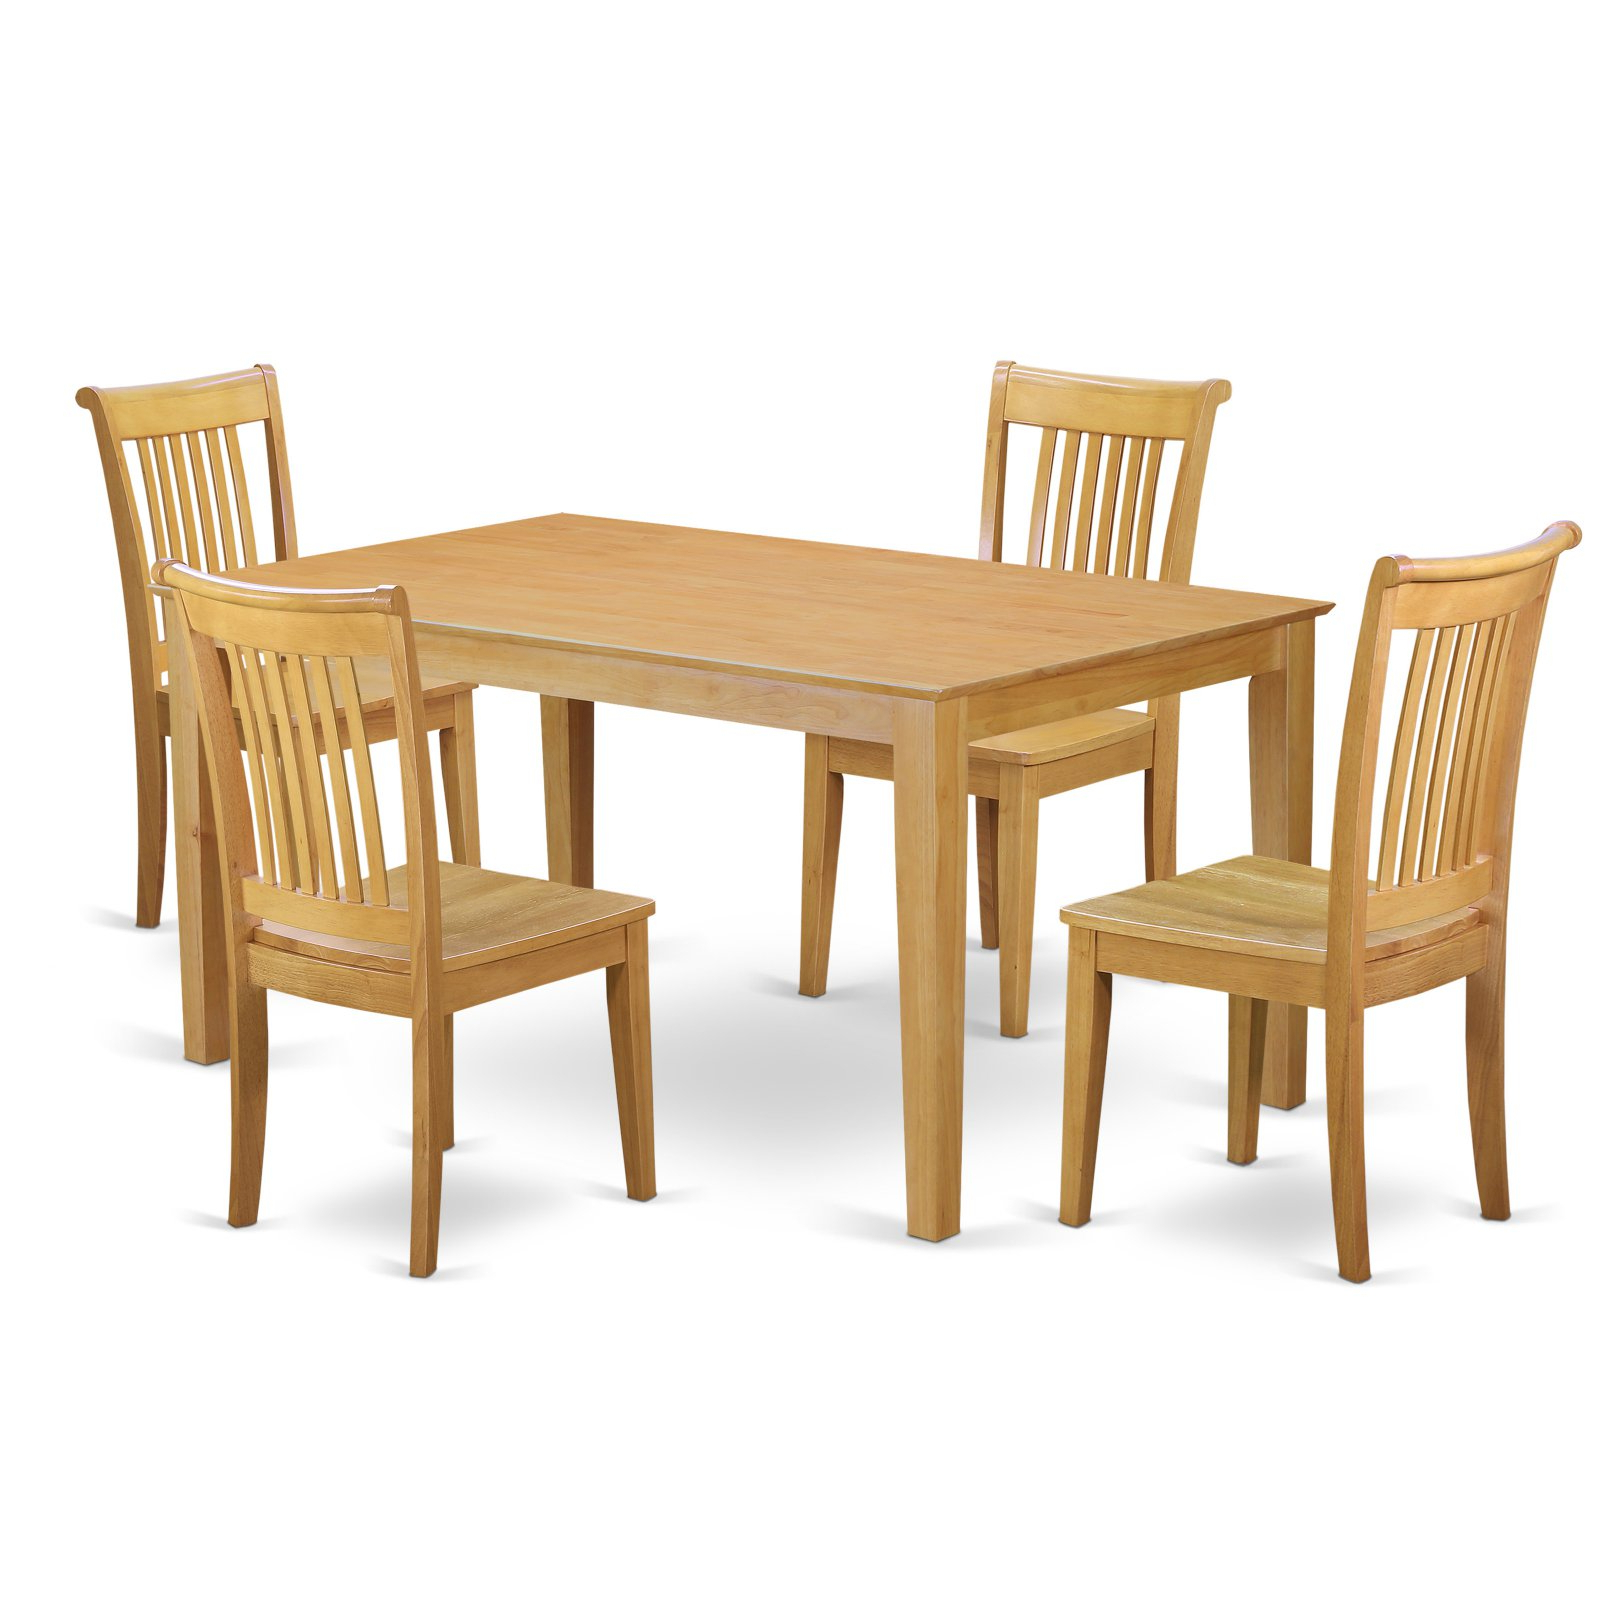 Products For Most Popular Travon 5 Piece Dining Sets (View 11 of 25)